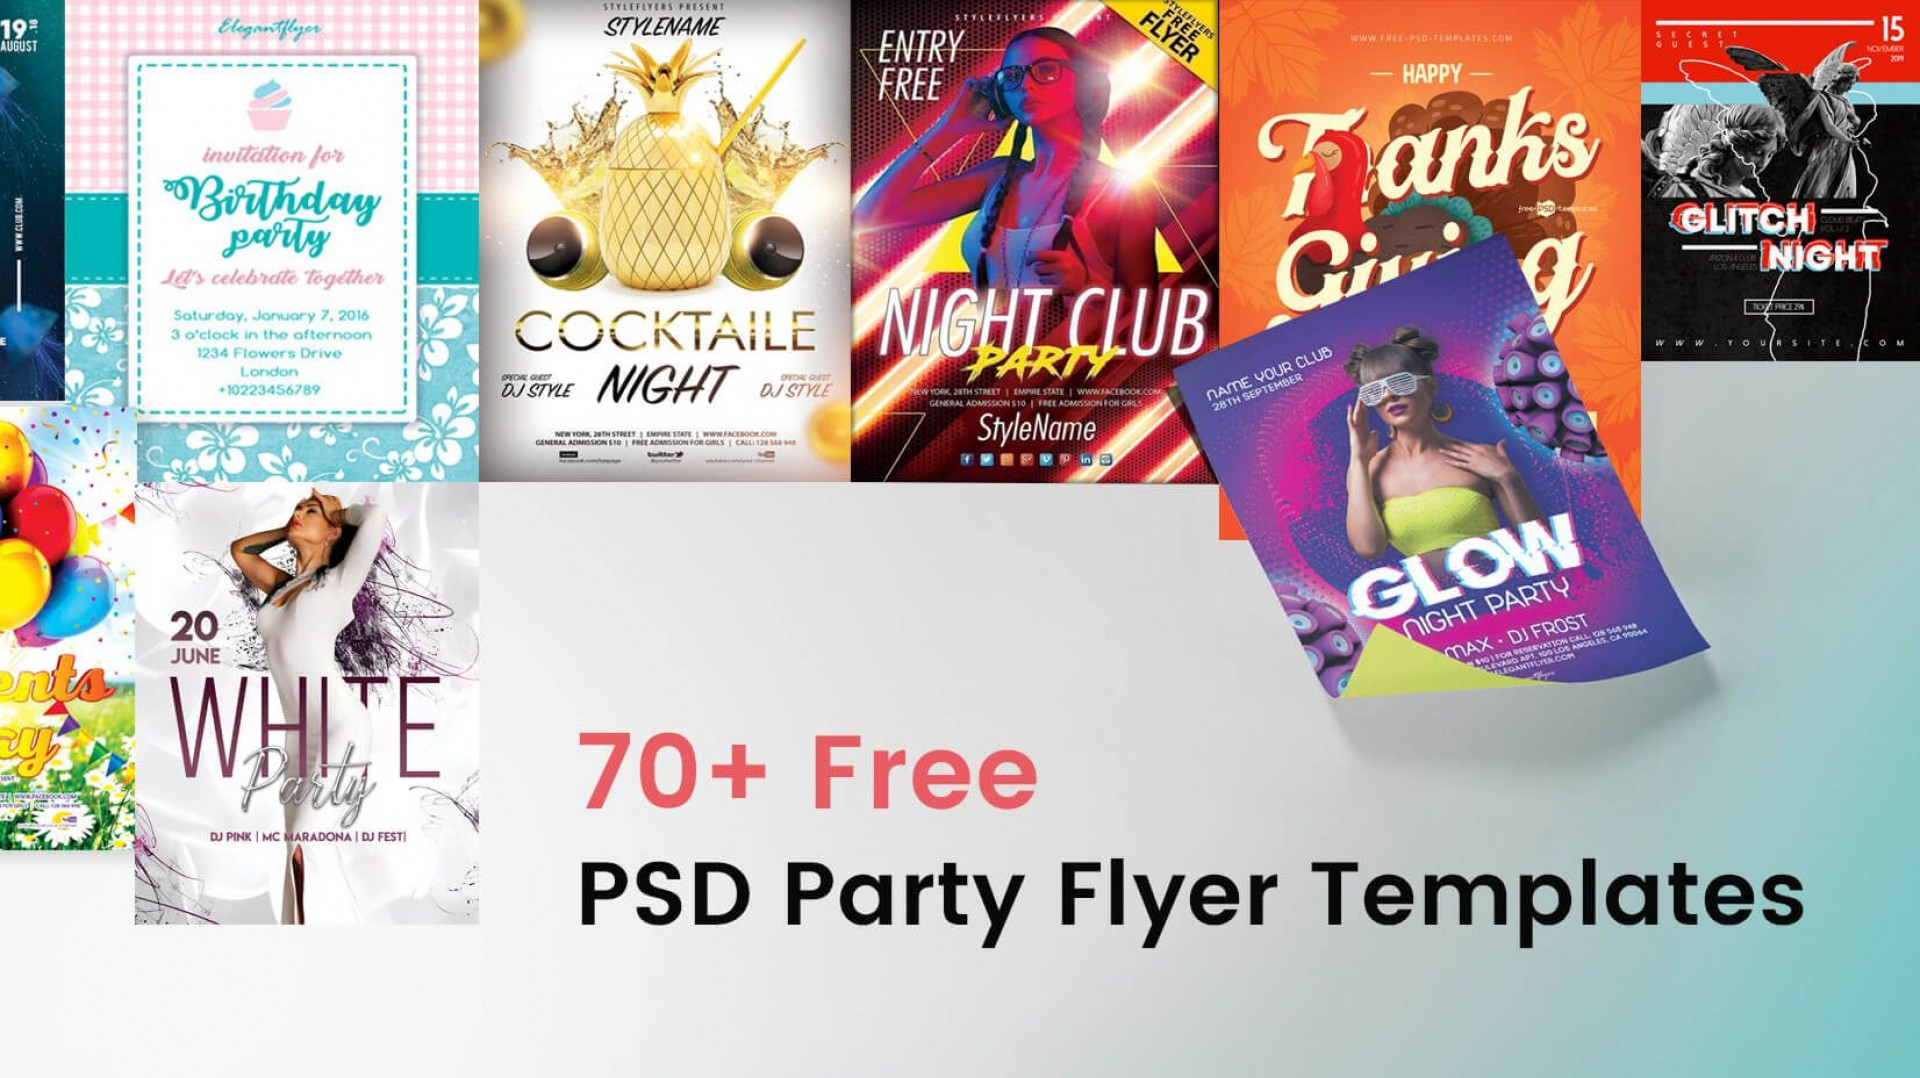 007 Unusual Free School Event Flyer Template Inspiration  Templates1920